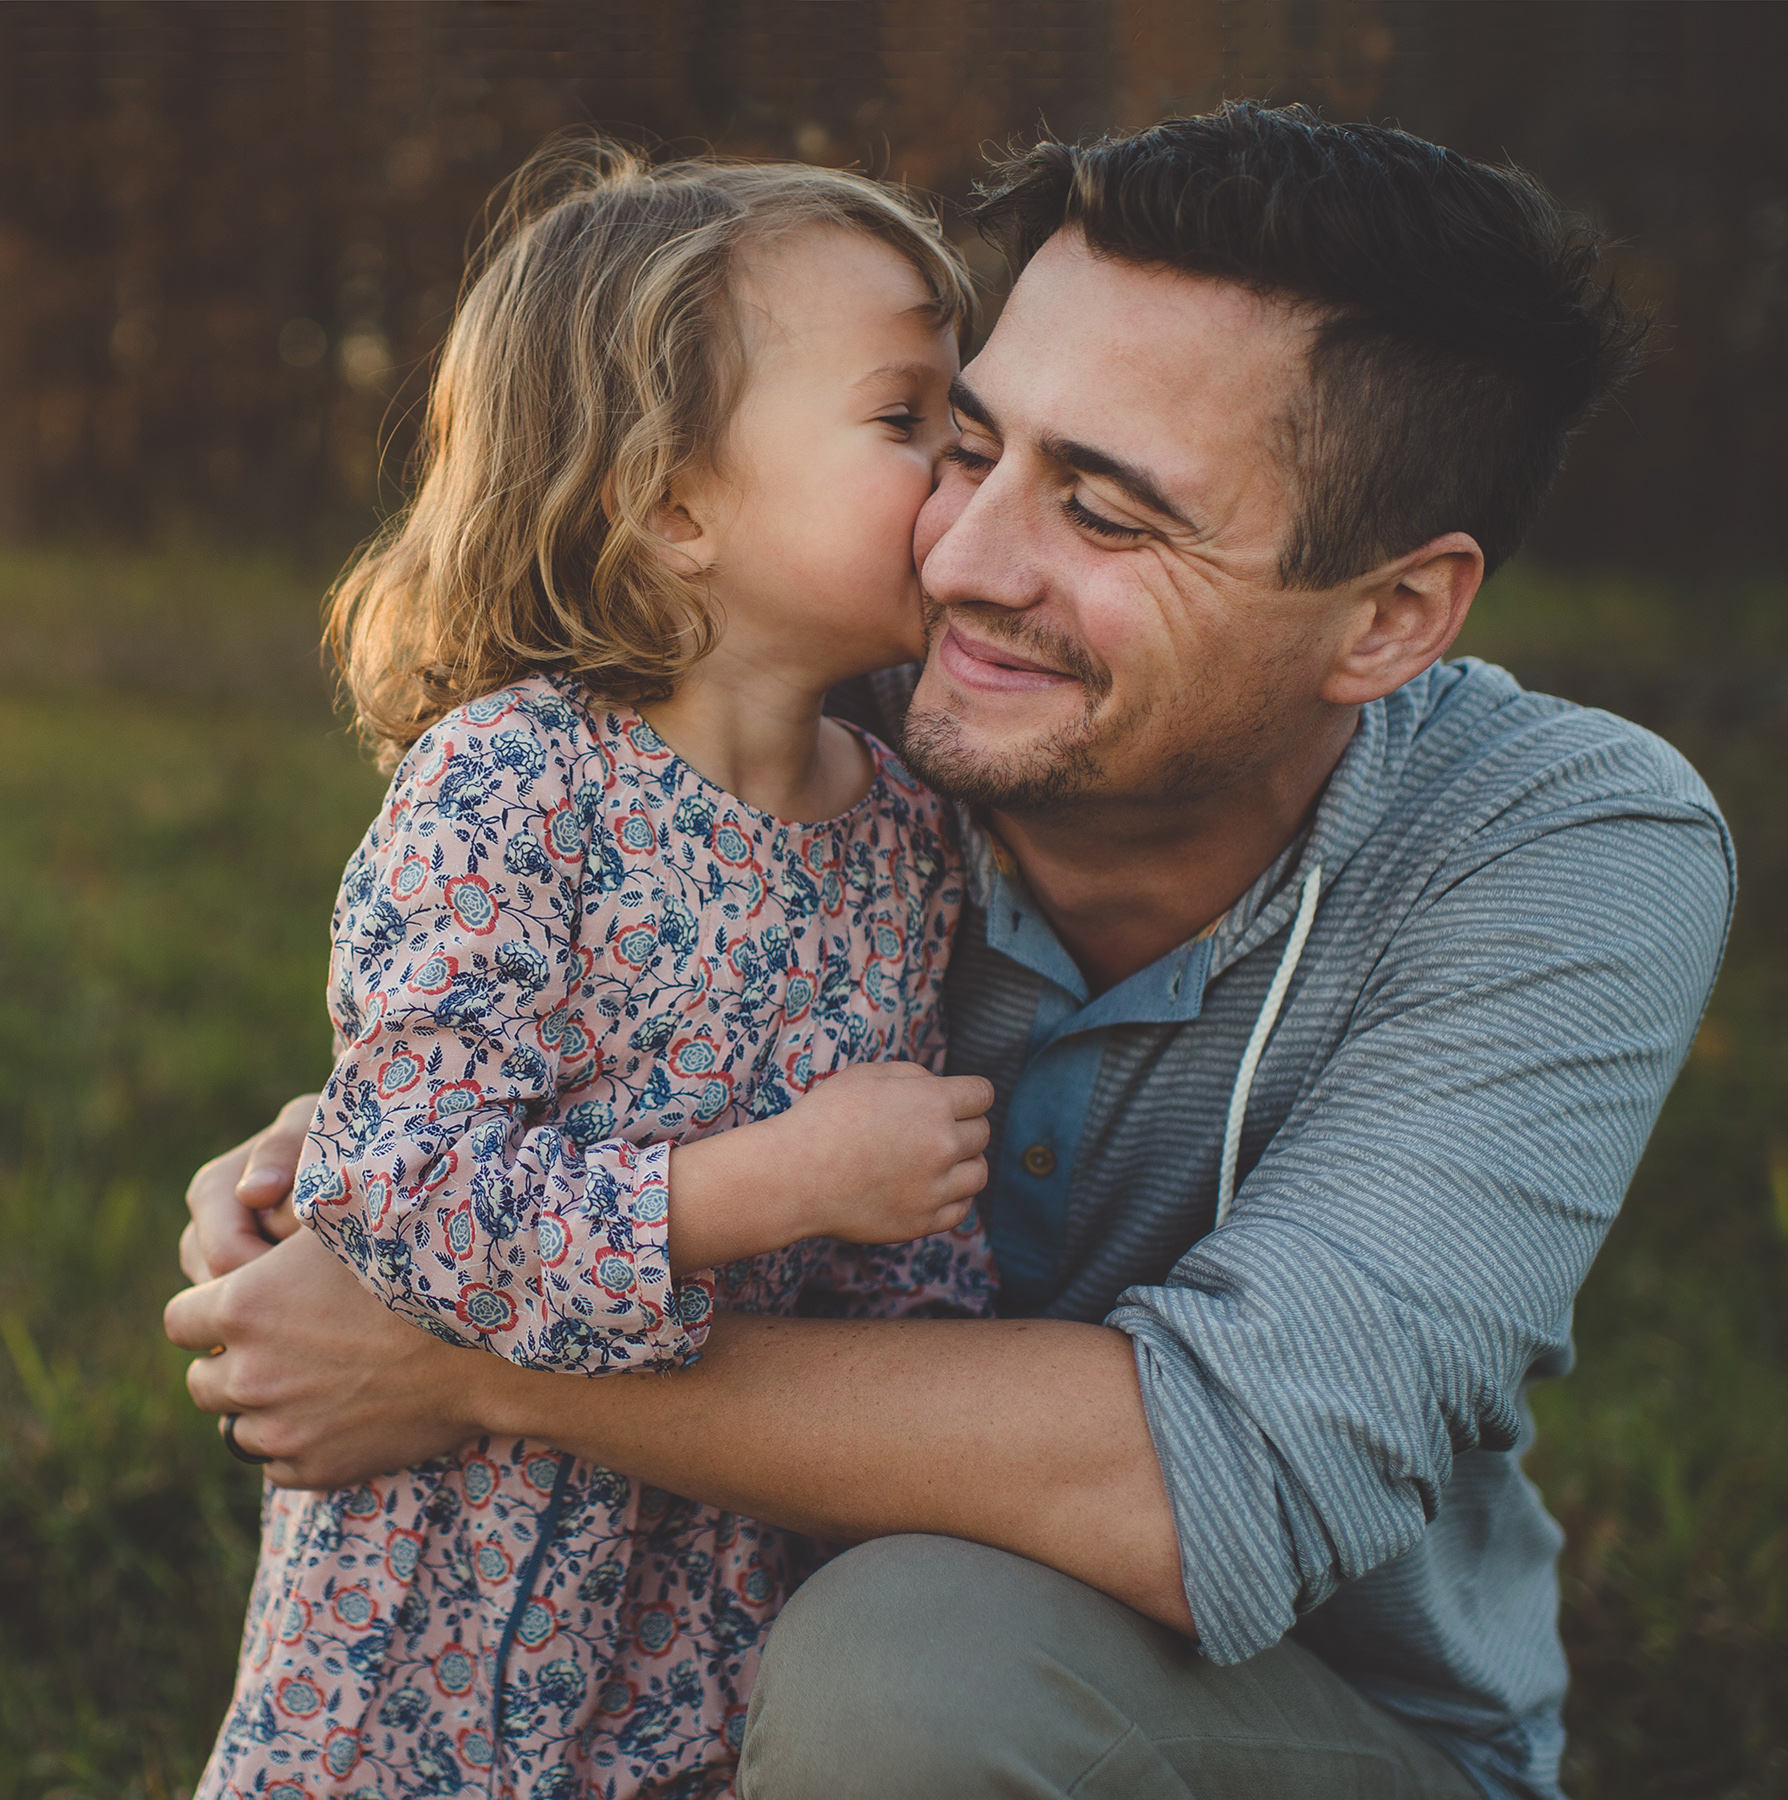 Father and daughter hug in field